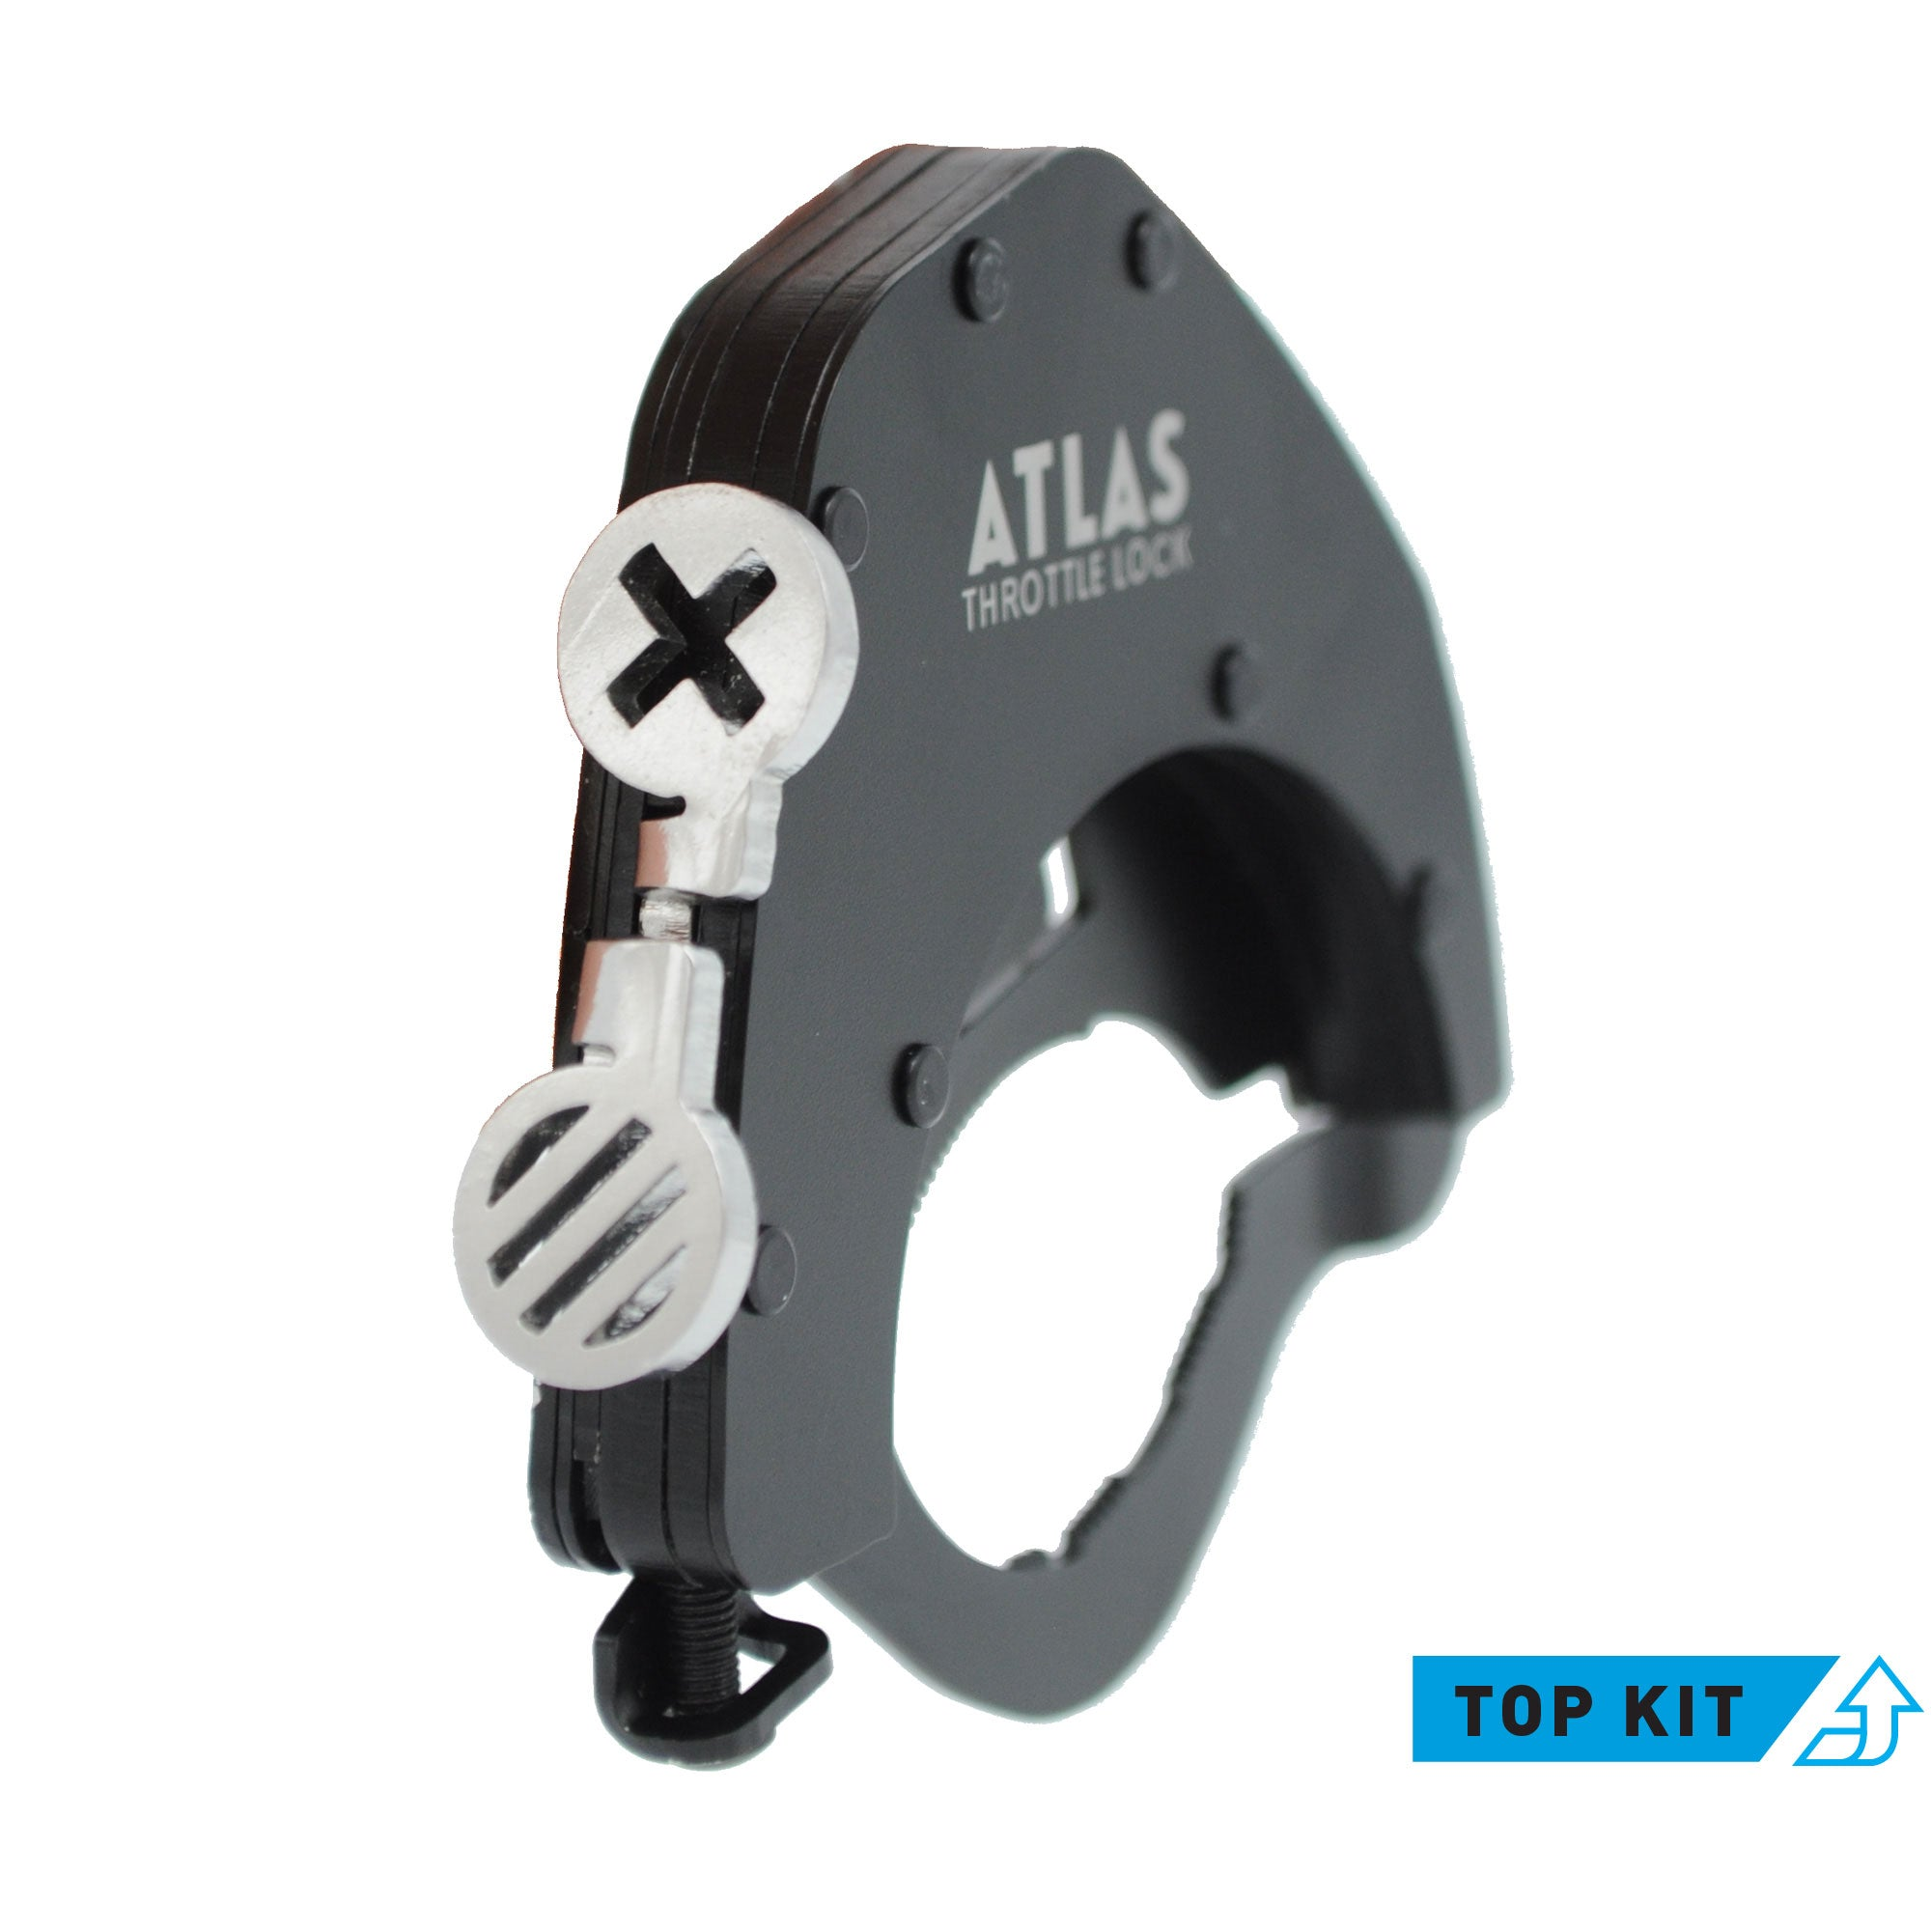 Yingang Motorcycles - ATLAS Throttle Lock